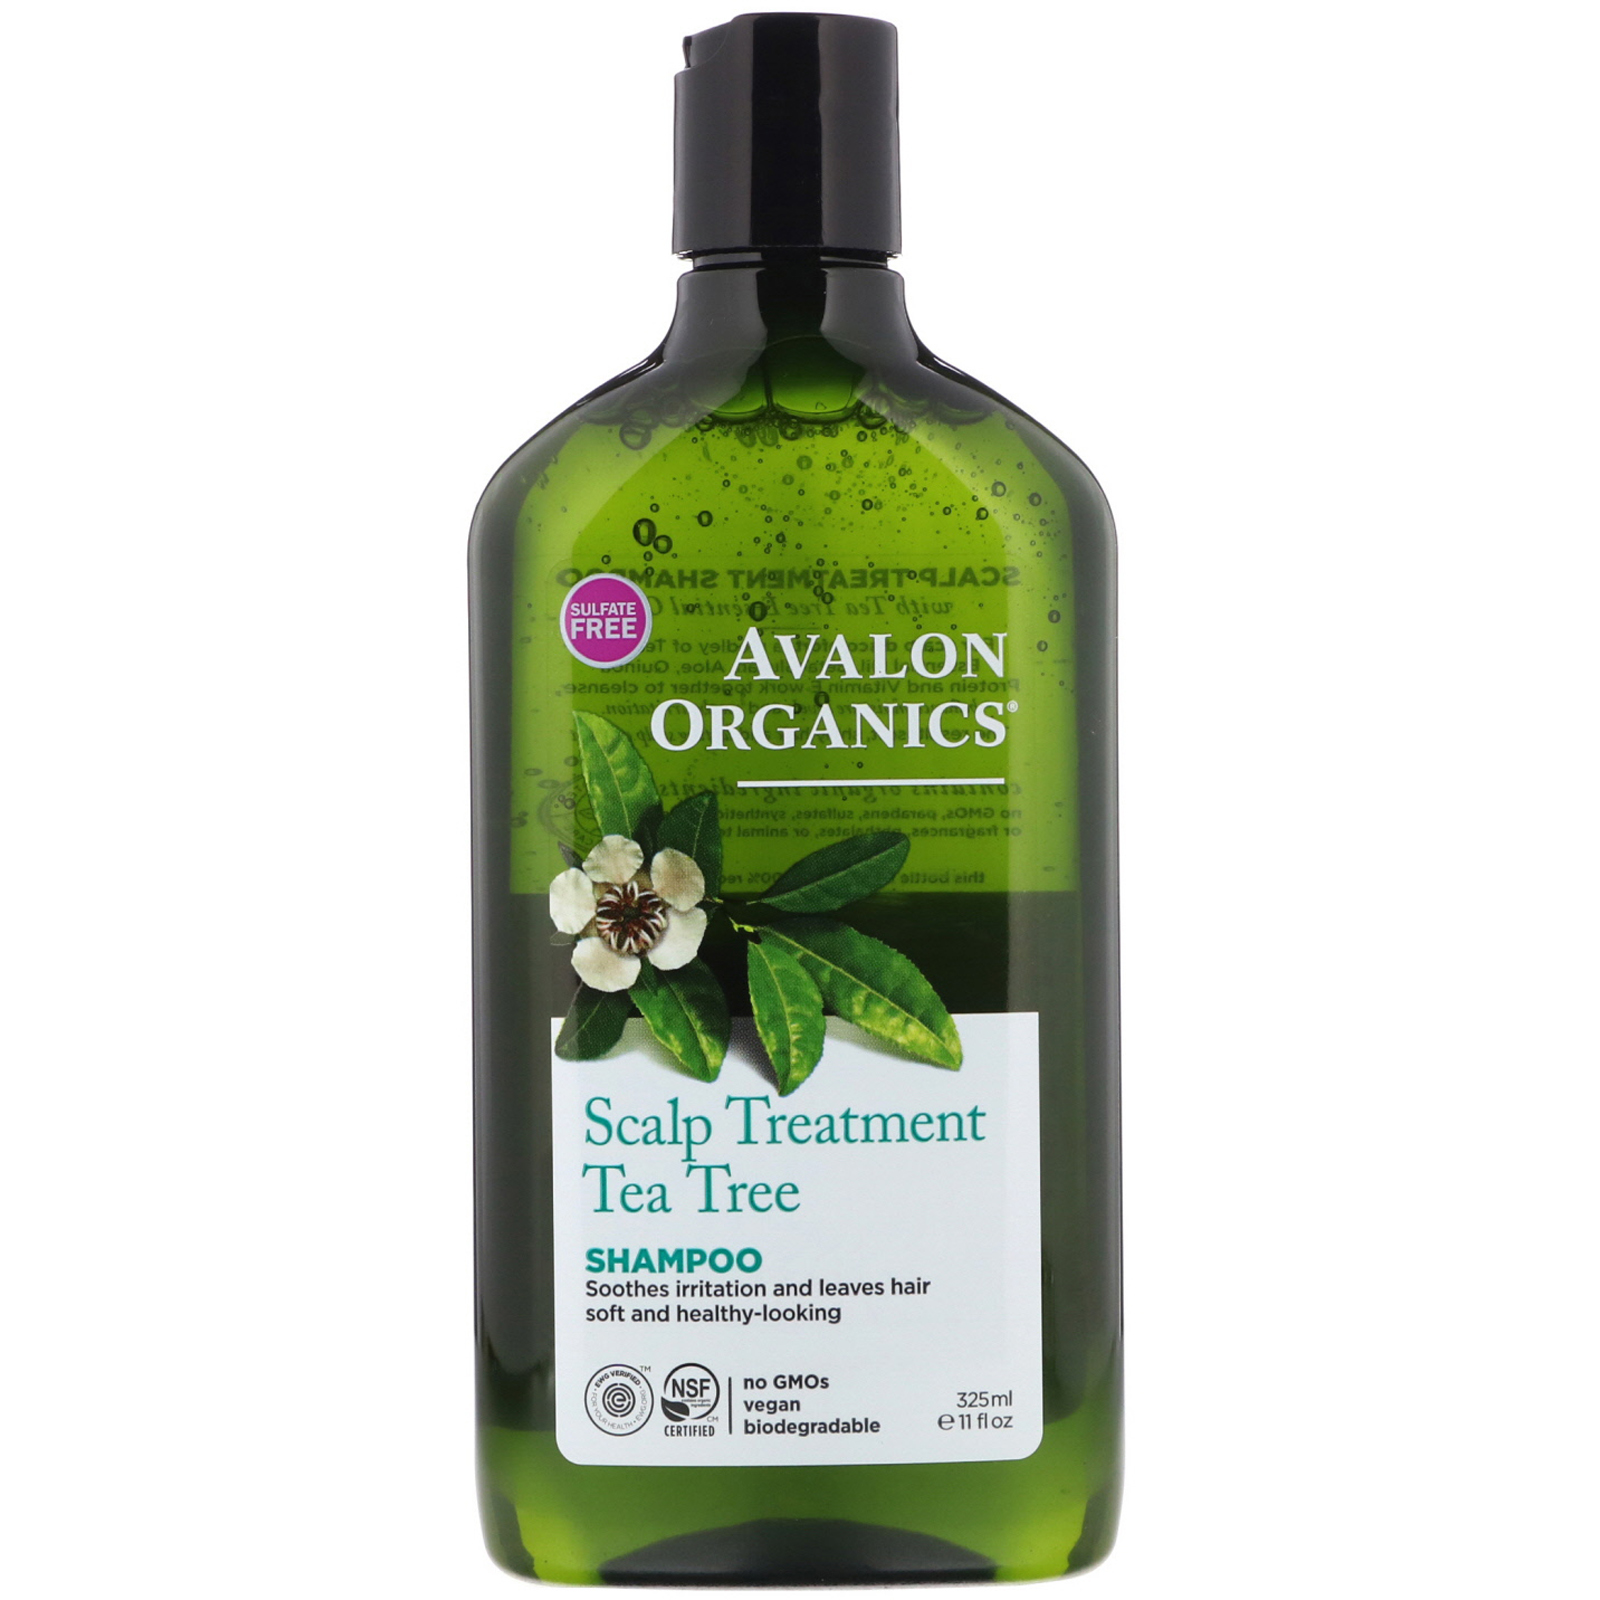 Tea Tree Oil: Gains And Uses